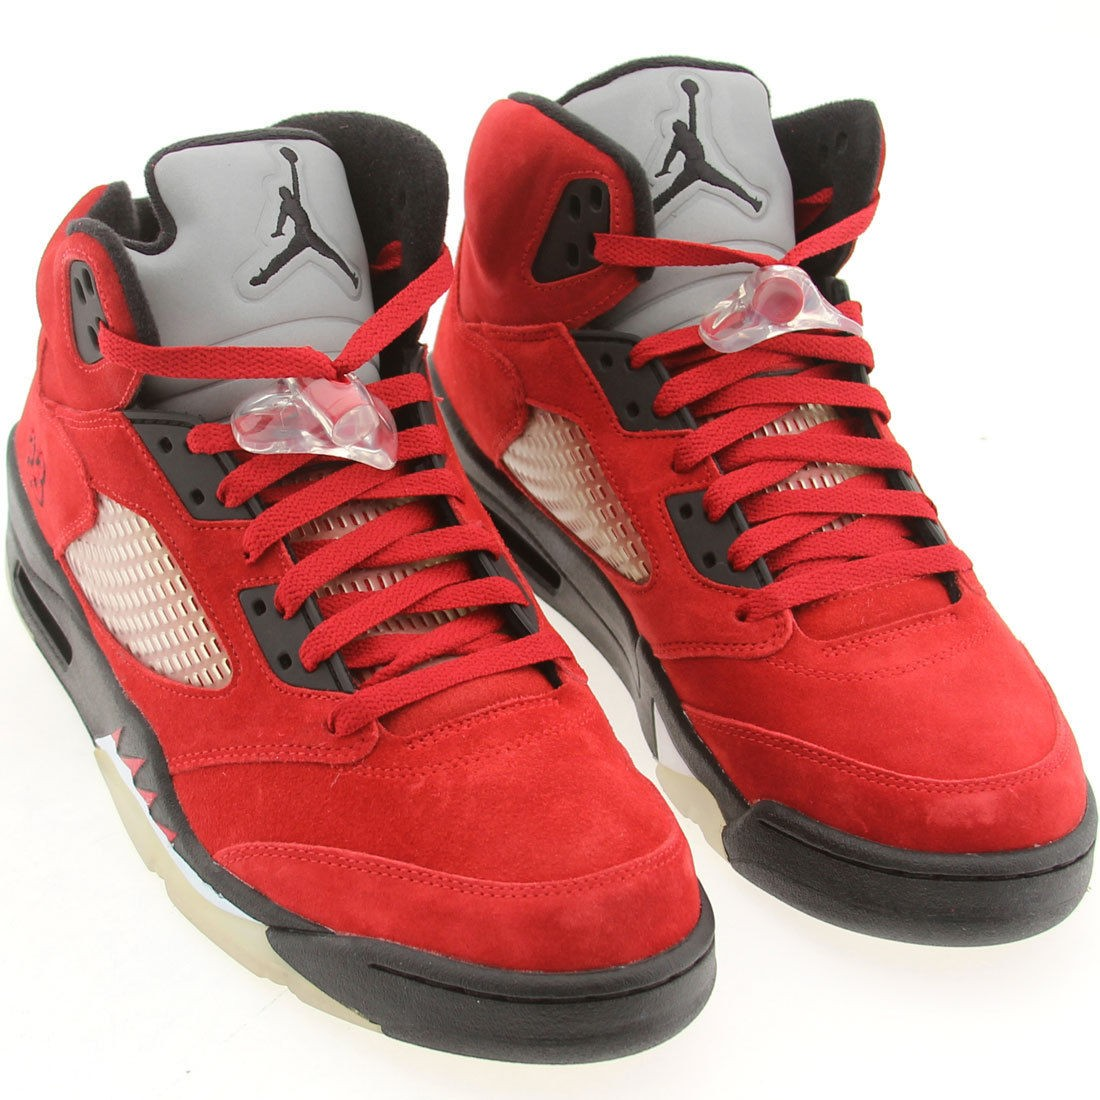 Outlet Air Jordan 5(V) Retro Raging Bull Red Suede 2015 Varsity Red ... 48b3bfd7c